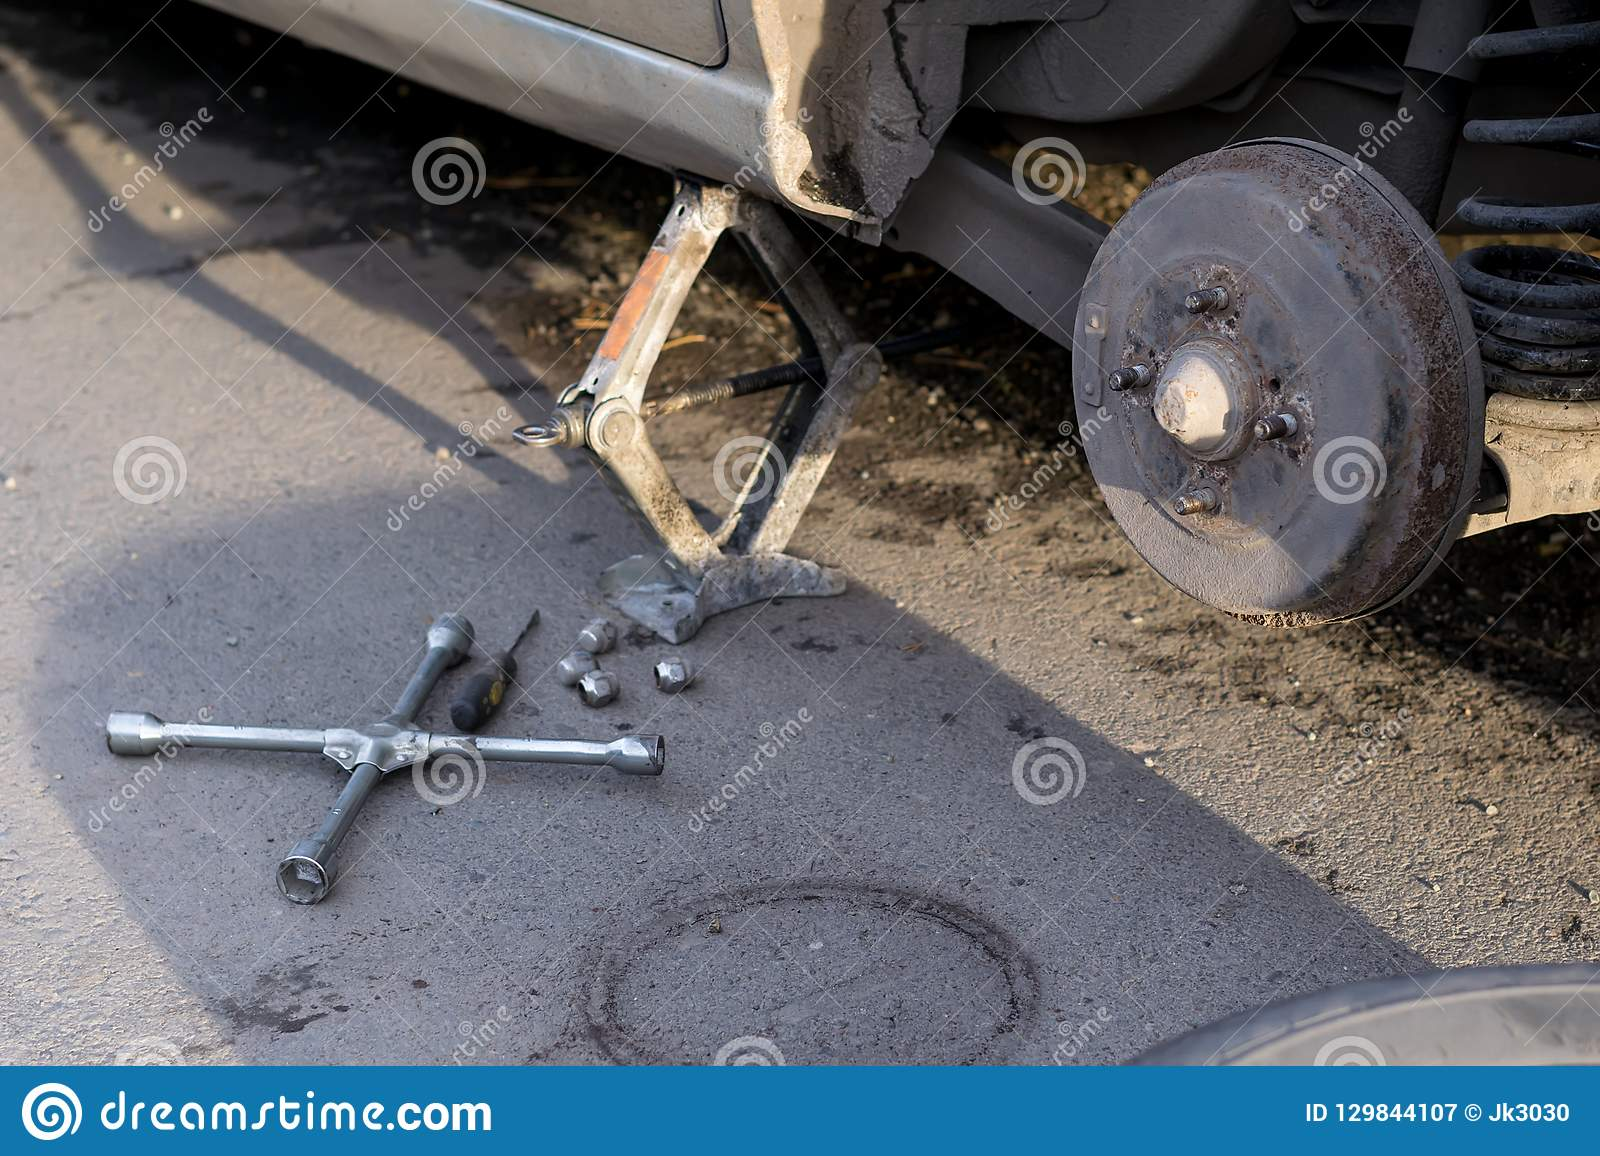 Replacing the rear wheel of the car. The car is mounted on the Jack. On the road lie screws, tool and wheel.